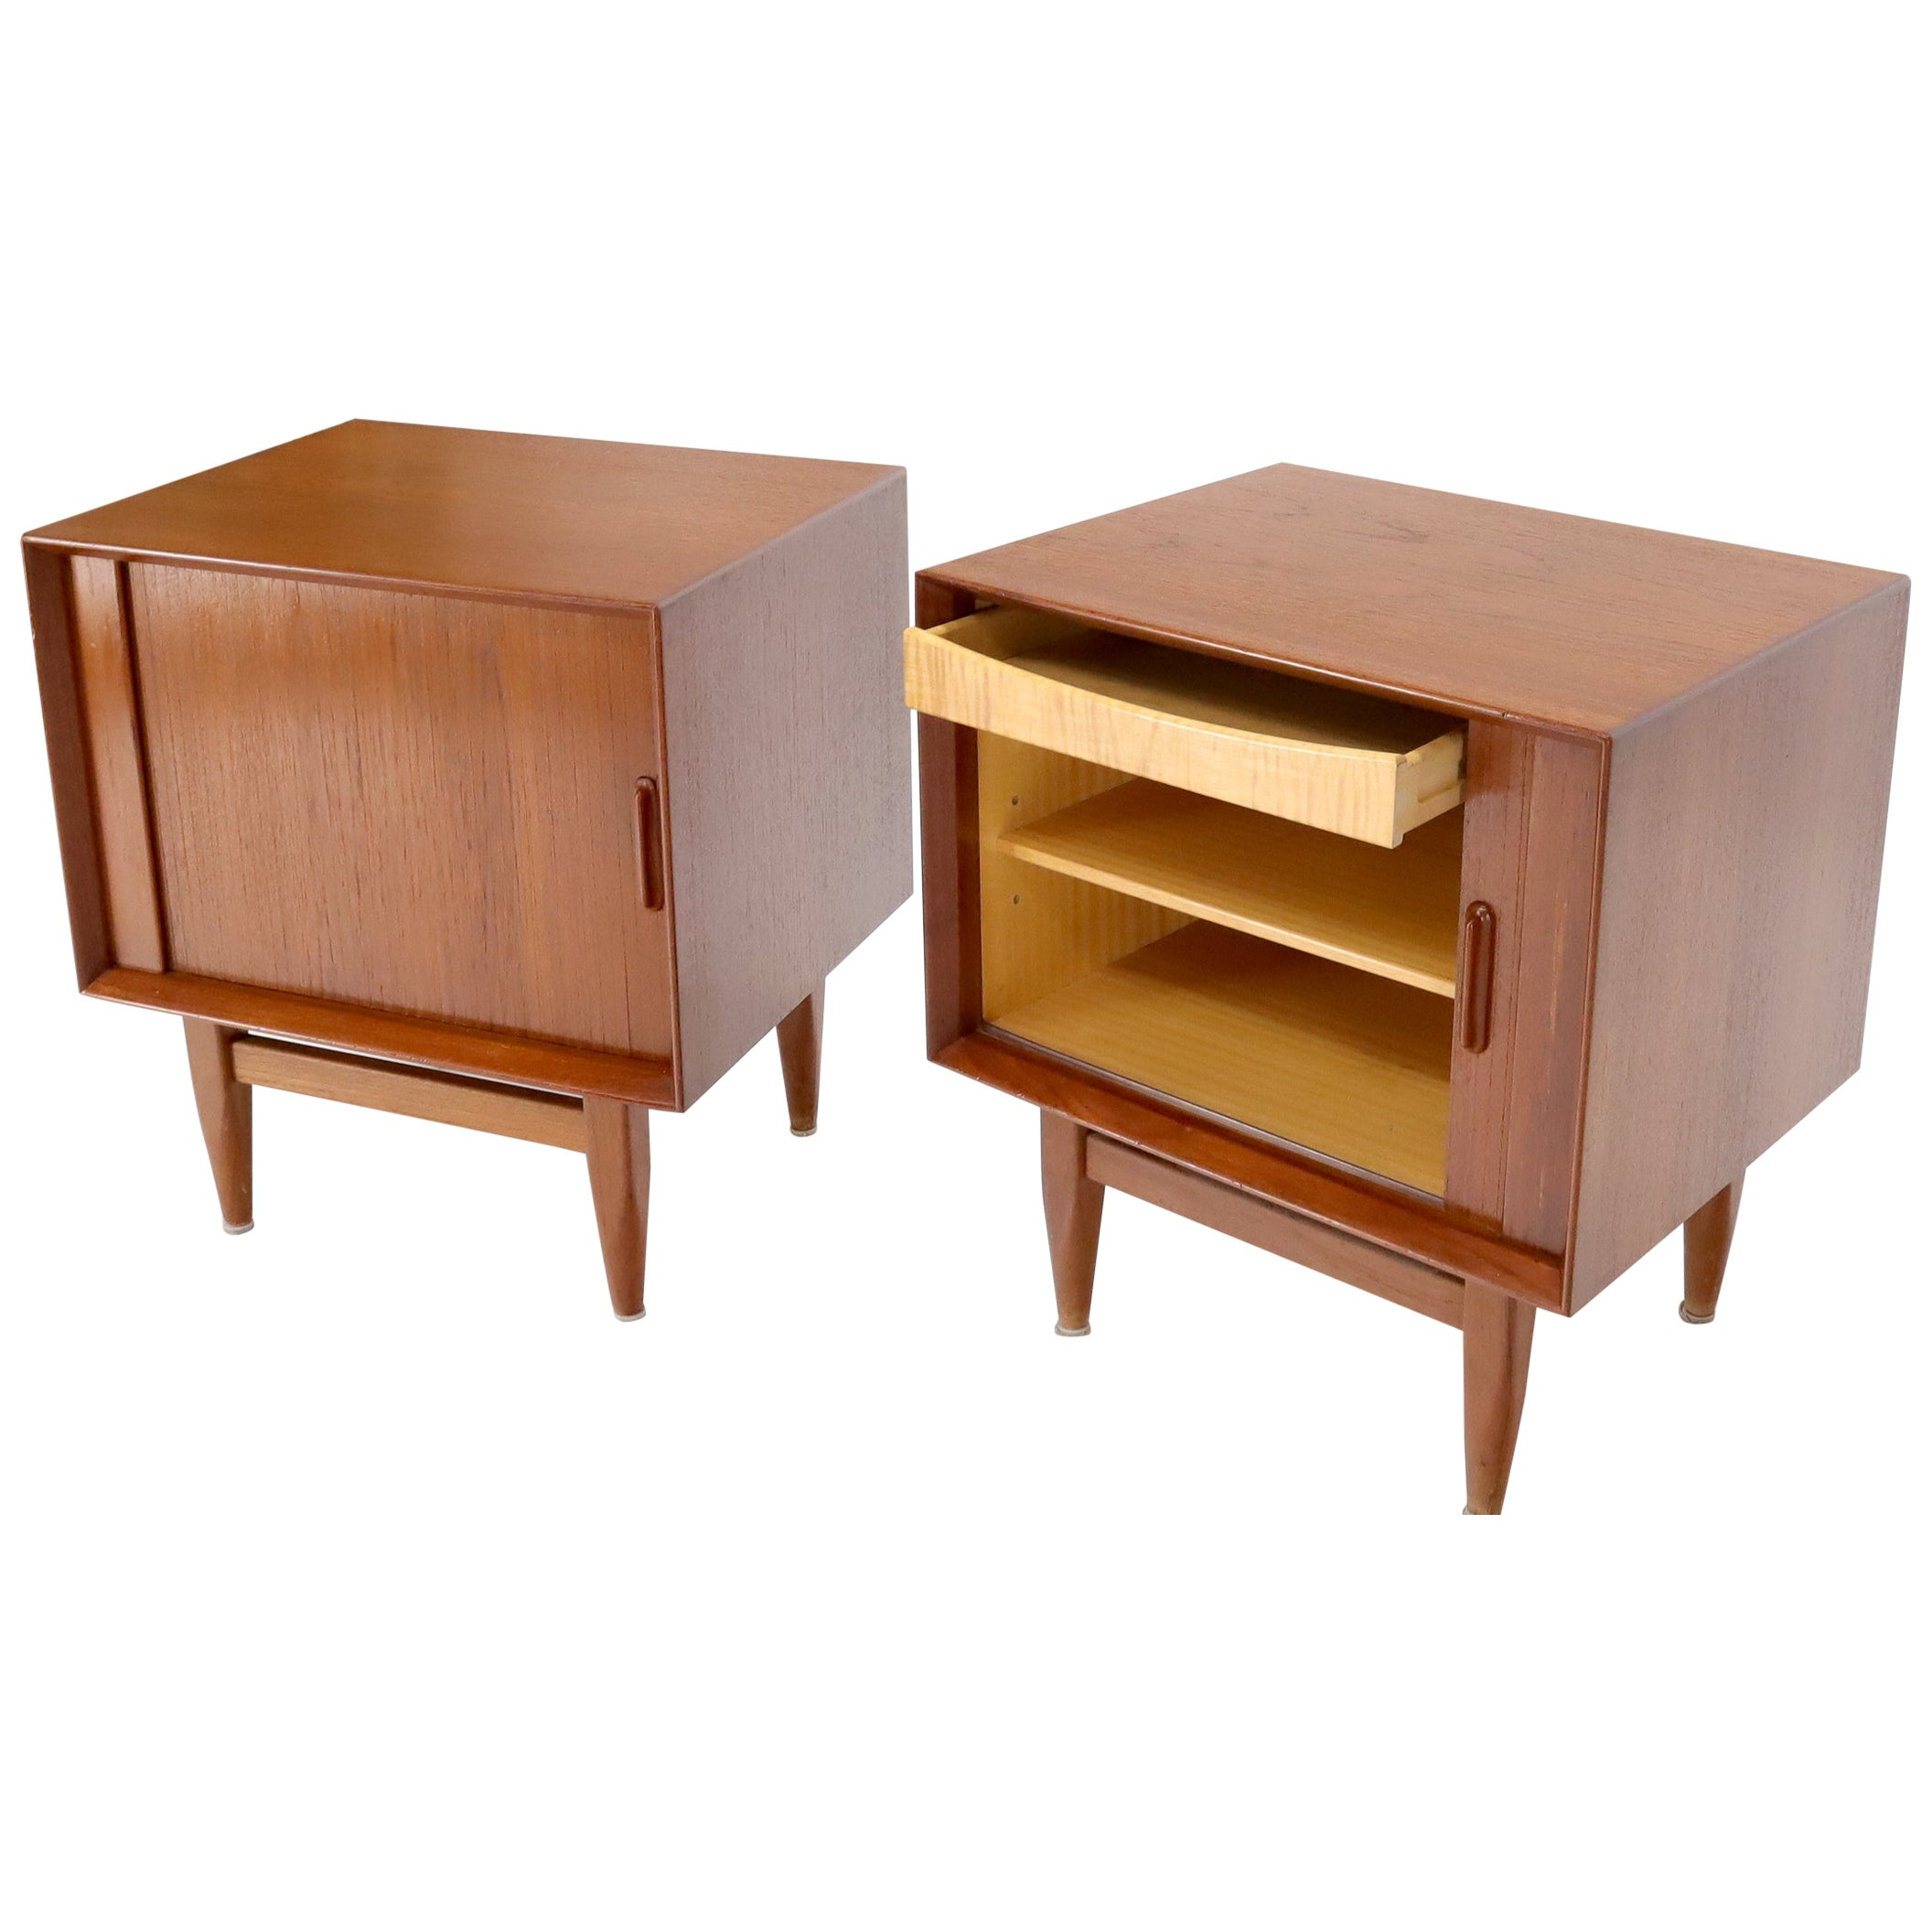 Tambour Doors Danish Mid-Century Modern Teak End Tables Nightstands